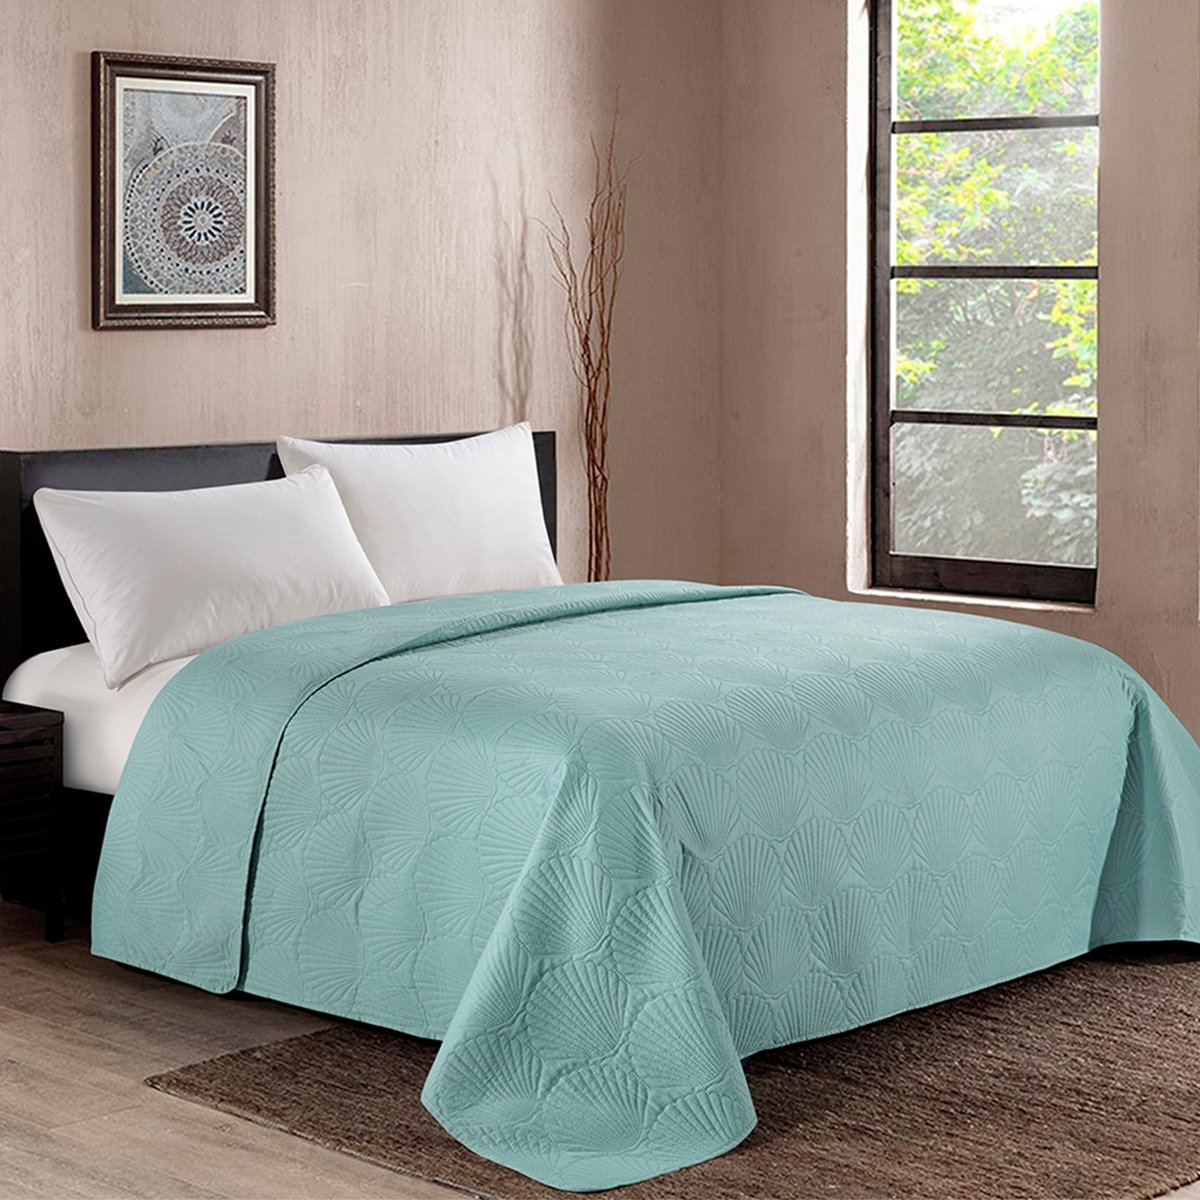 HollyHOME Coastal Style Super Soft Solid Single Shell Parttern Pinsonic Quilted Bed Quilt Bedspread Bed Cover, Turquoise, King by HollyHOME